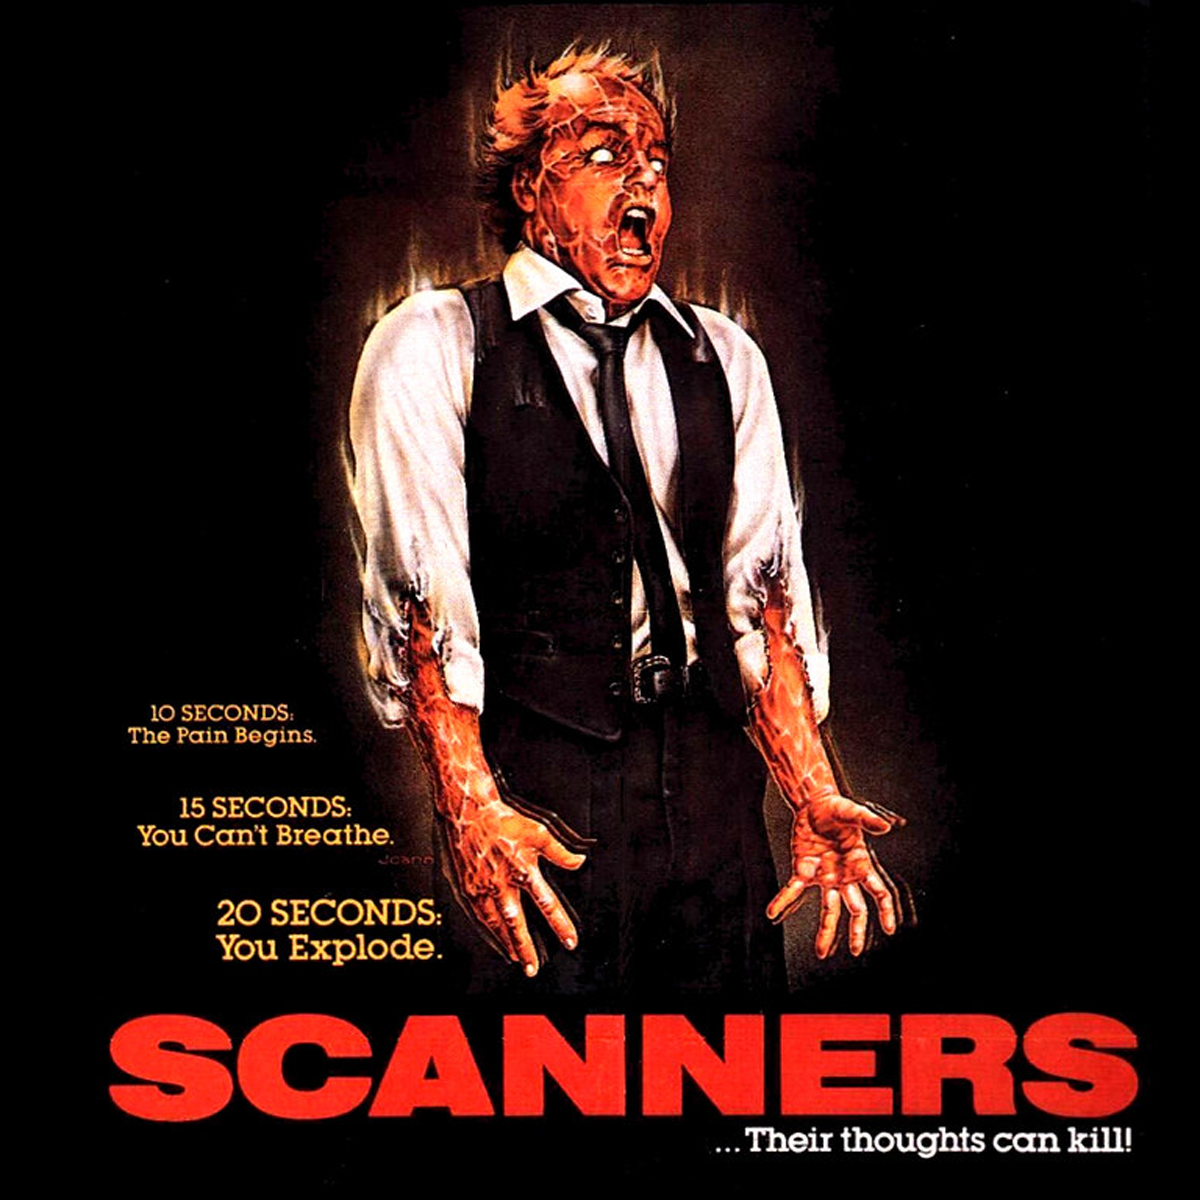 Scanners ISTYA movie review 1981